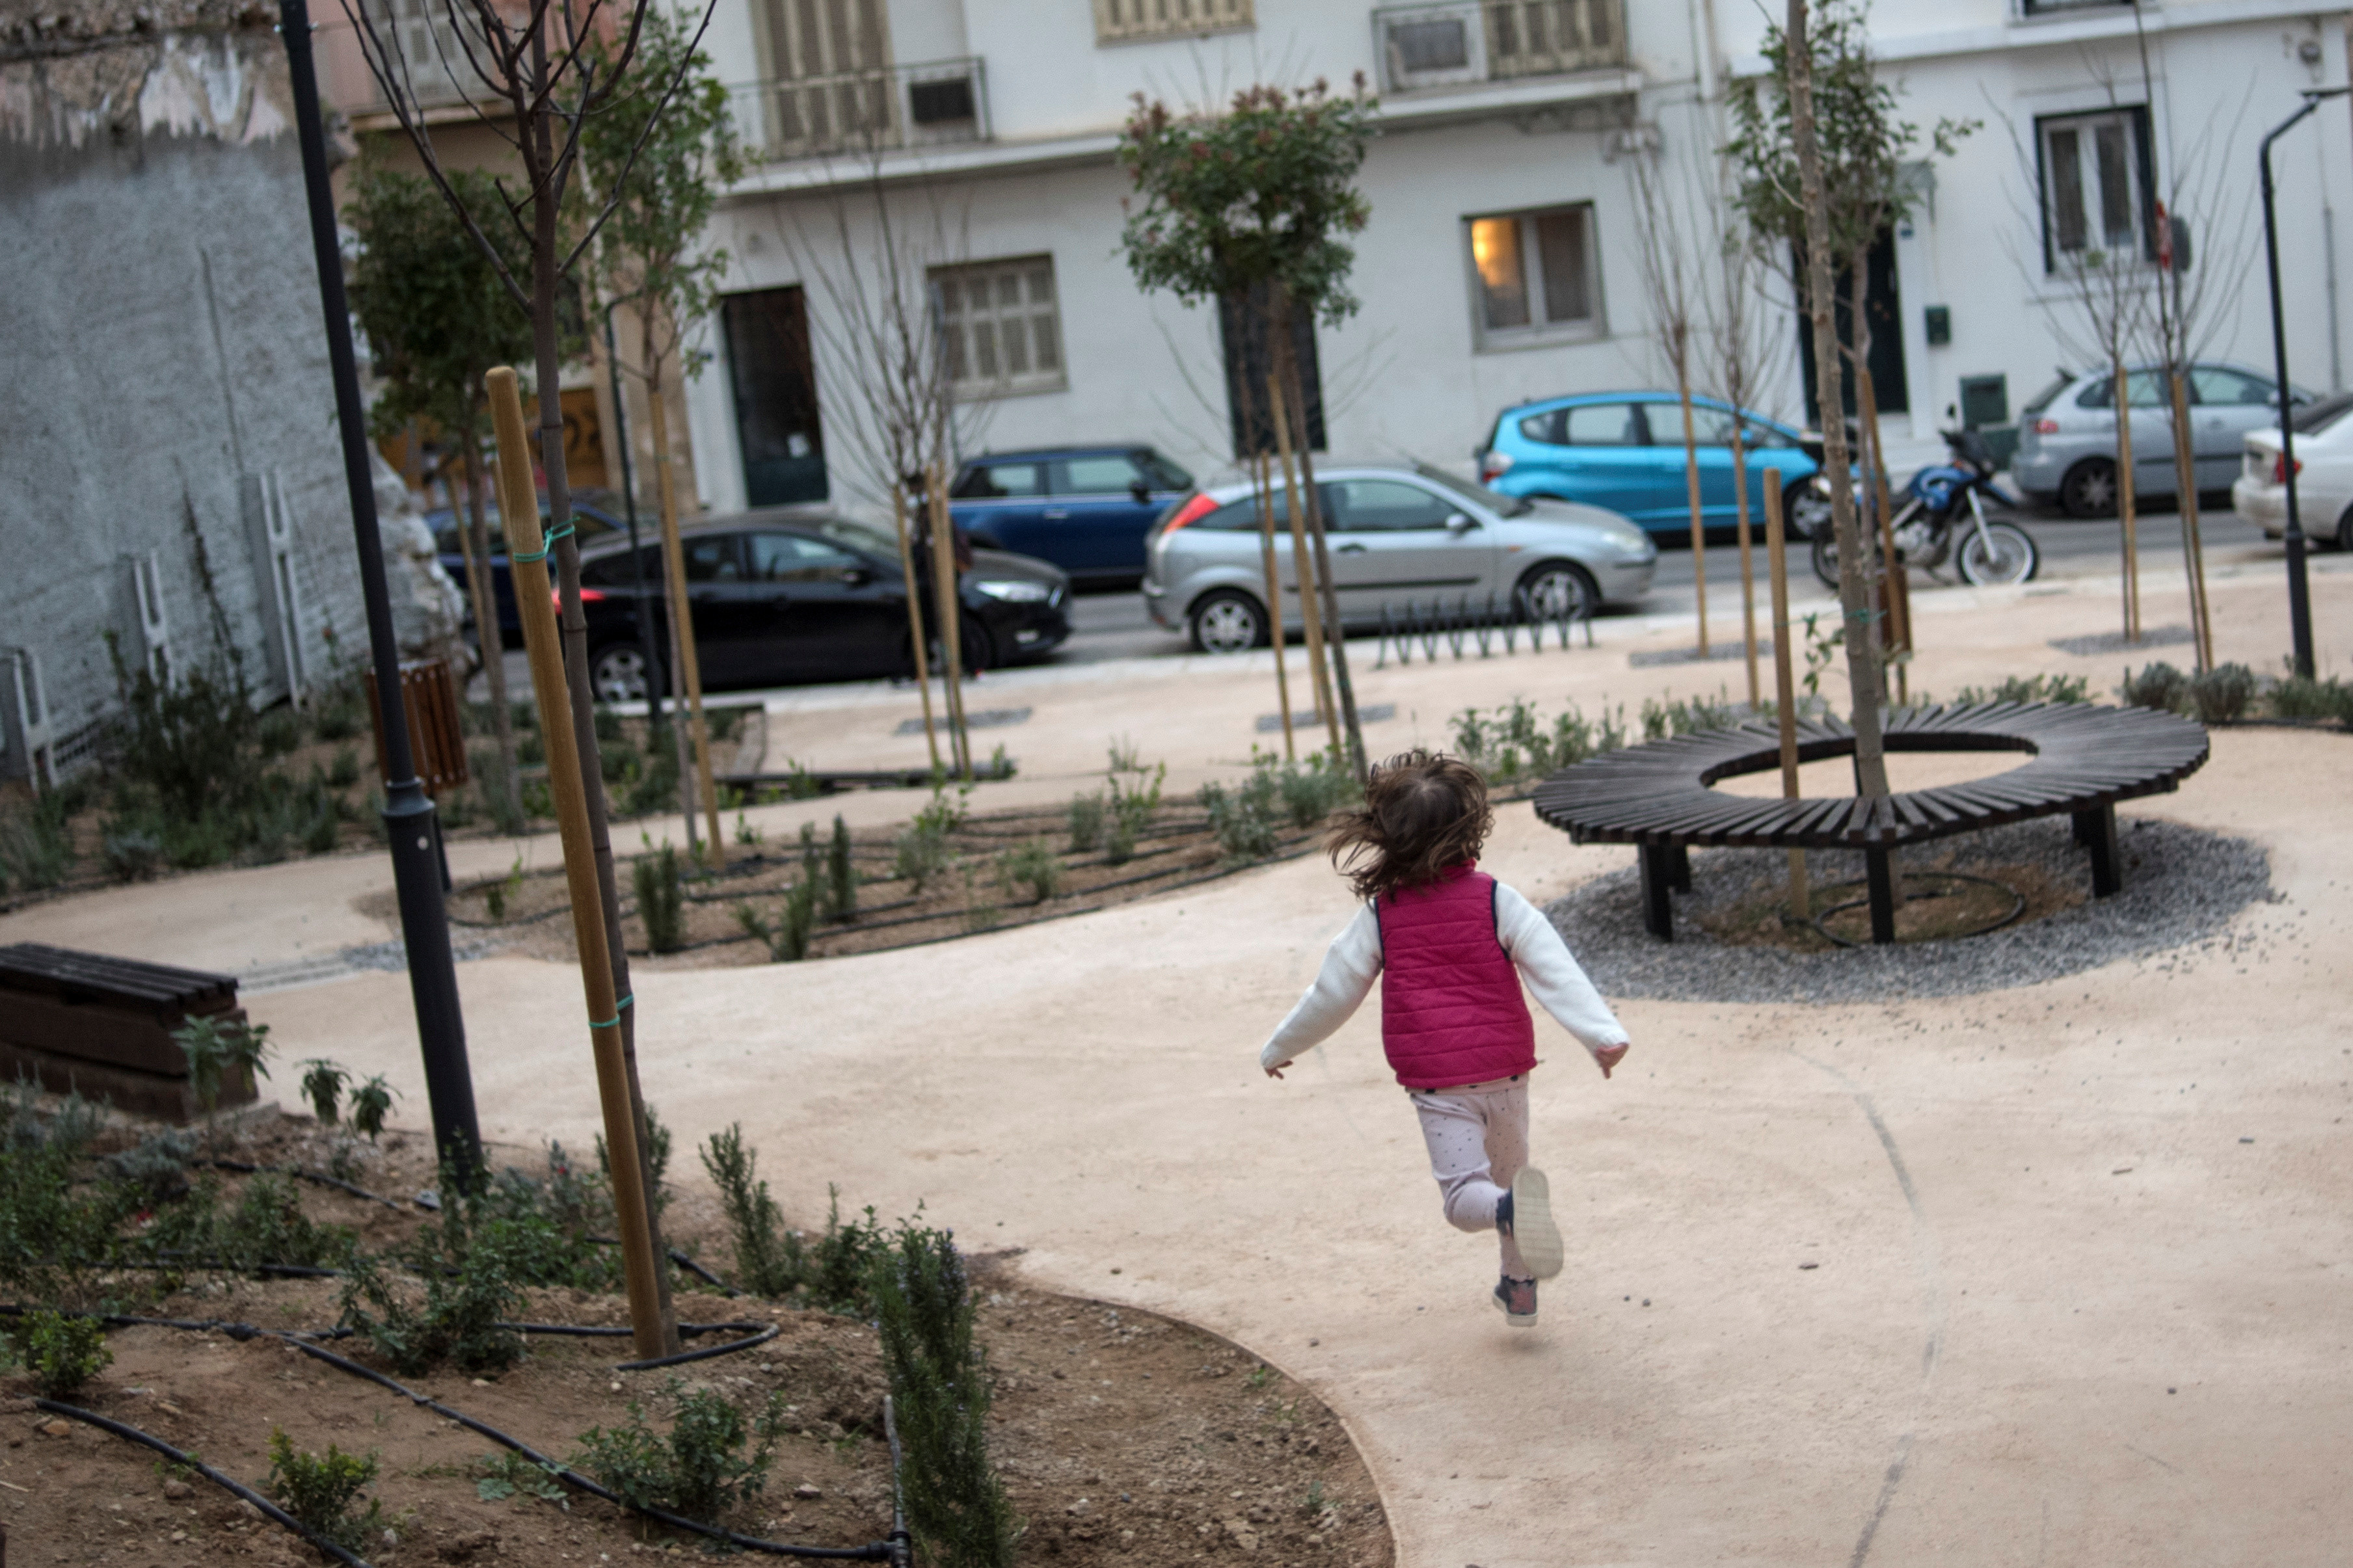 A child runs in a pocket park, in Athens, Greece, March 5, 2021. Picture taken March 5, 2021. REUTERS/Louiza Vradi - RC219M9QXMUV